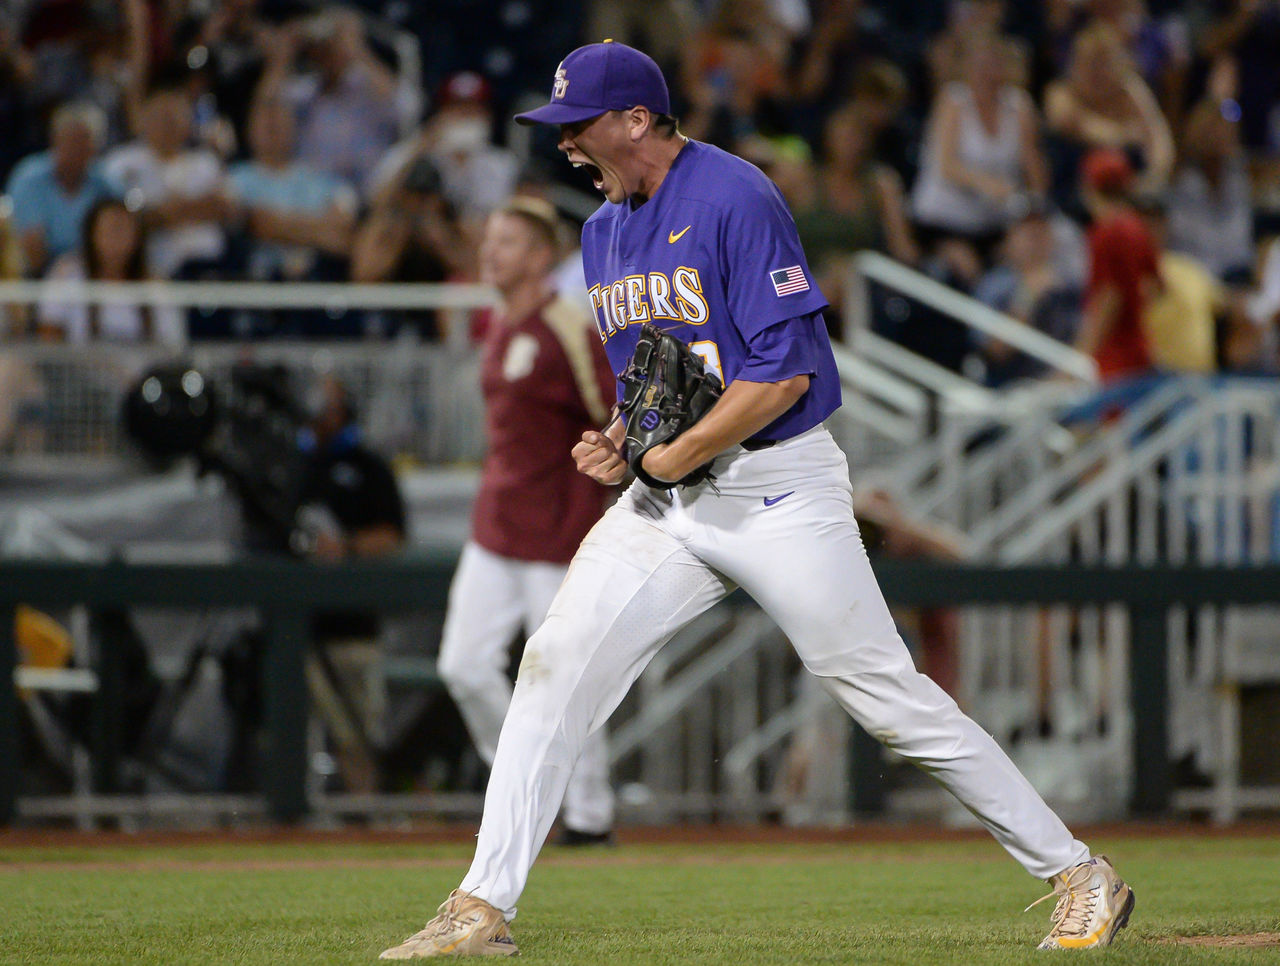 Cropped 2017 06 22t030457z 820379173 nocid rtrmadp 3 ncaa baseball college world series florida state vs lsu